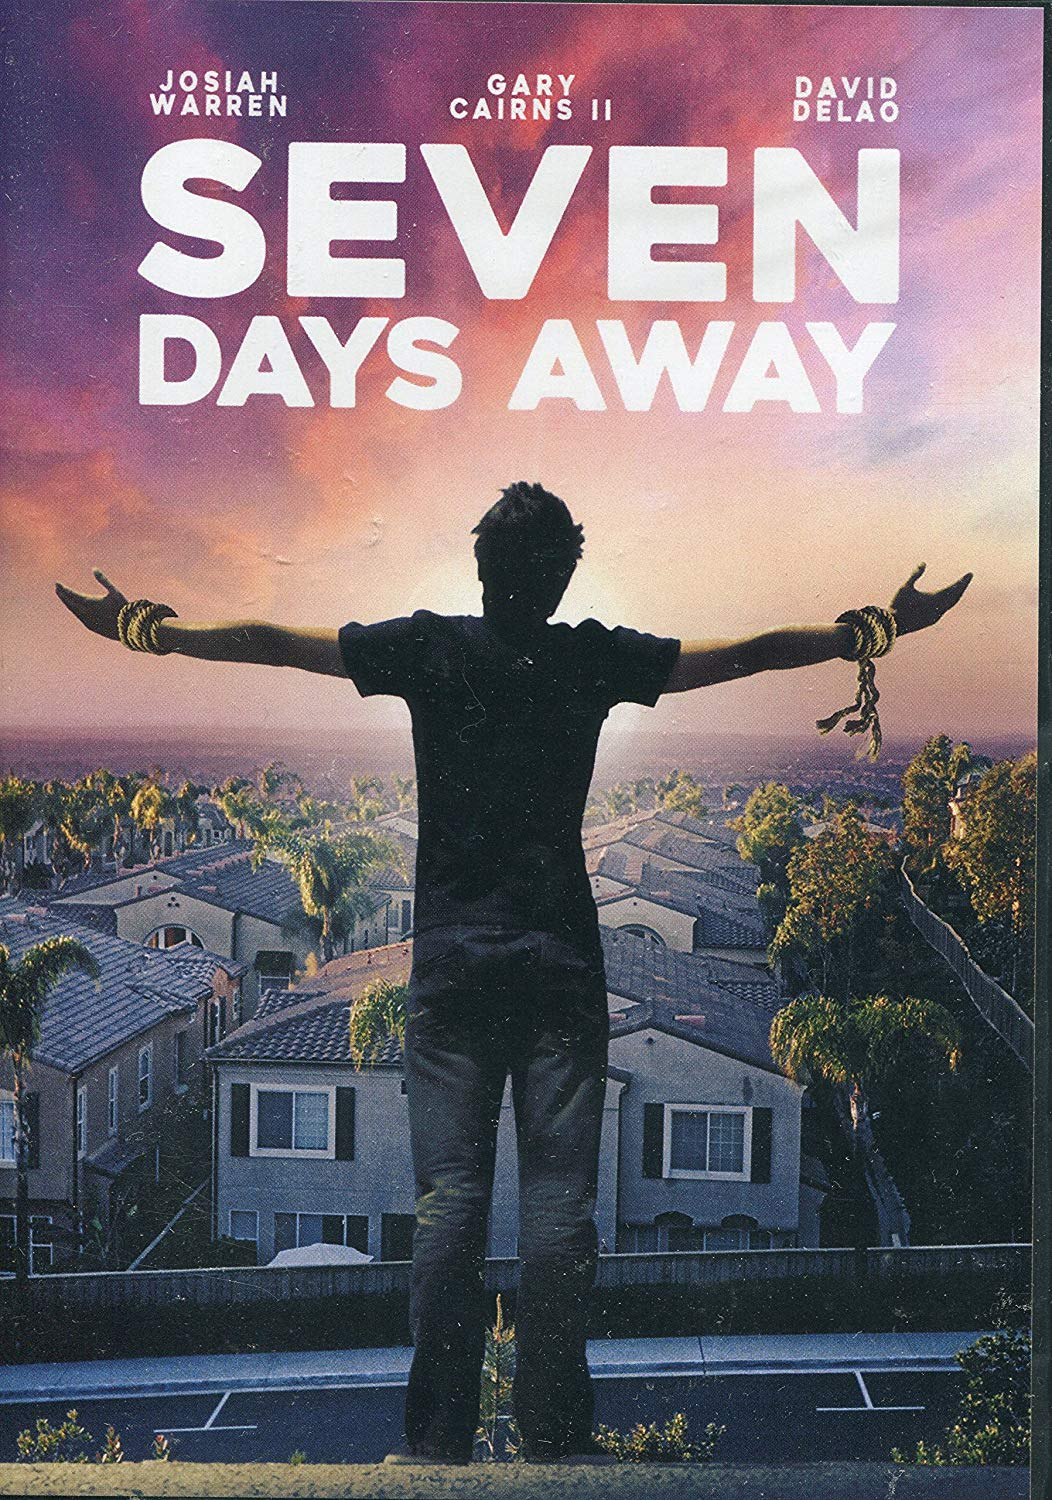 Seven Days Away - RELEASED ON 08/25/17